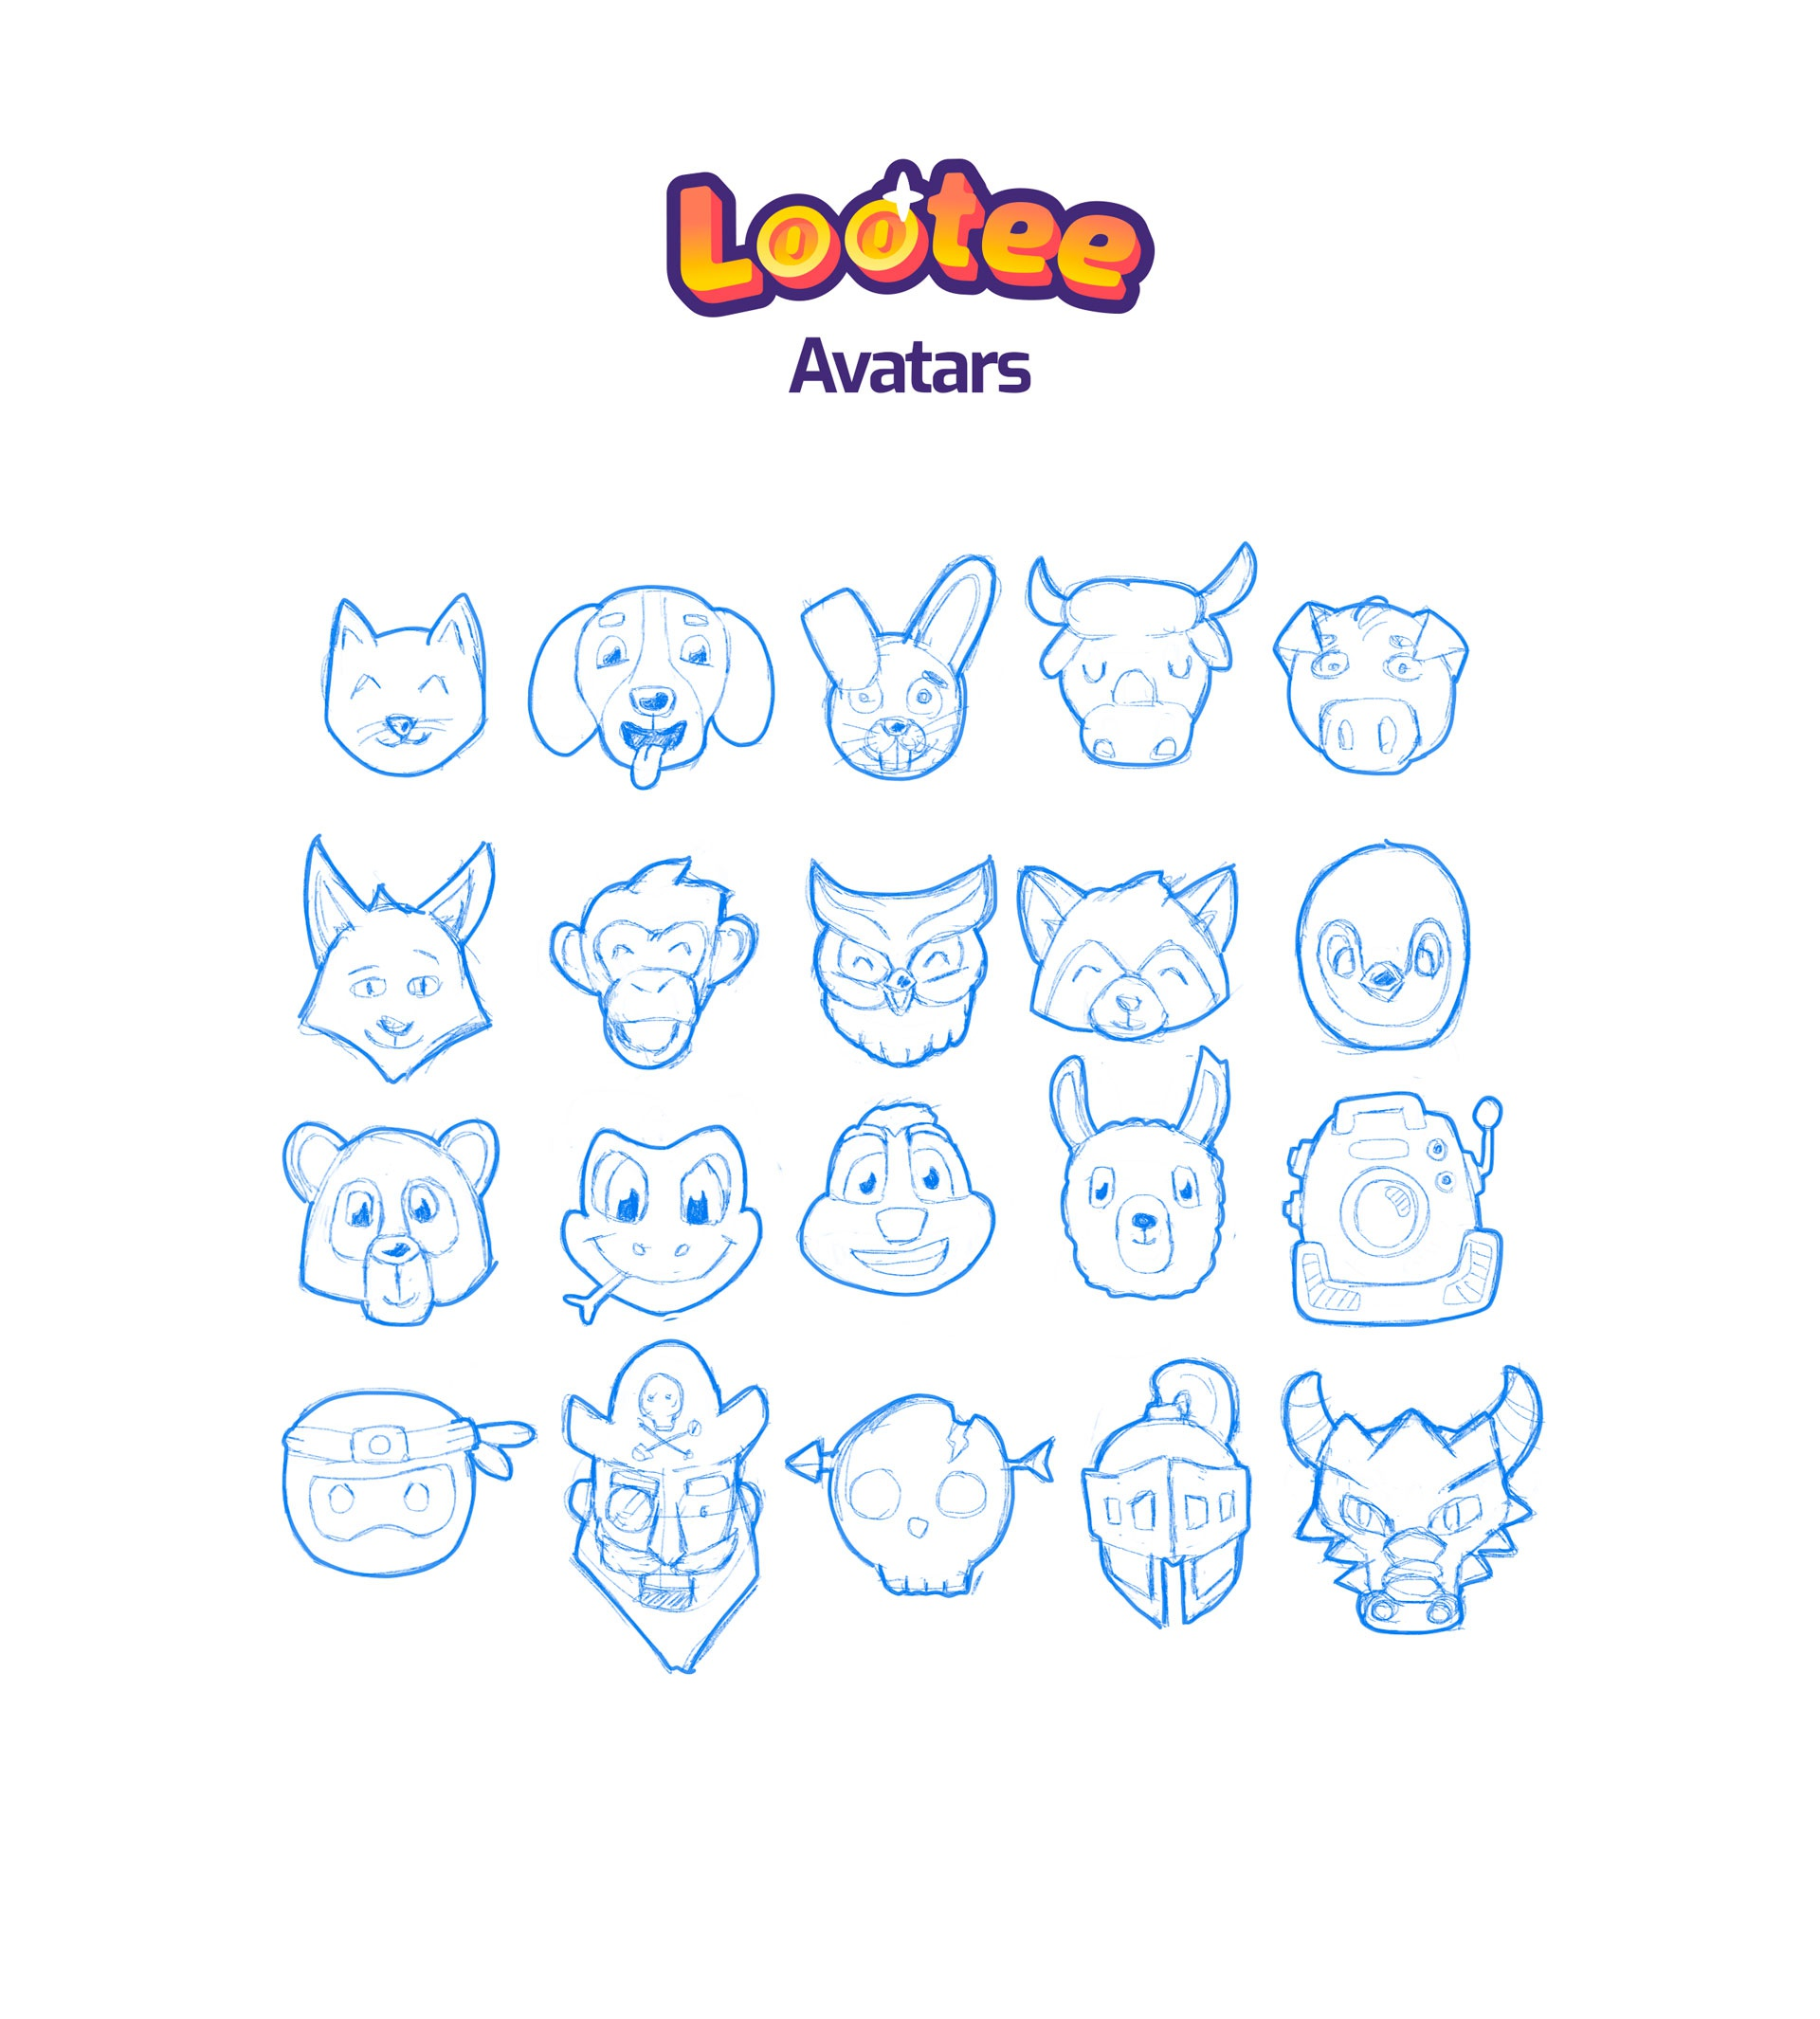 Lootee avatars 3